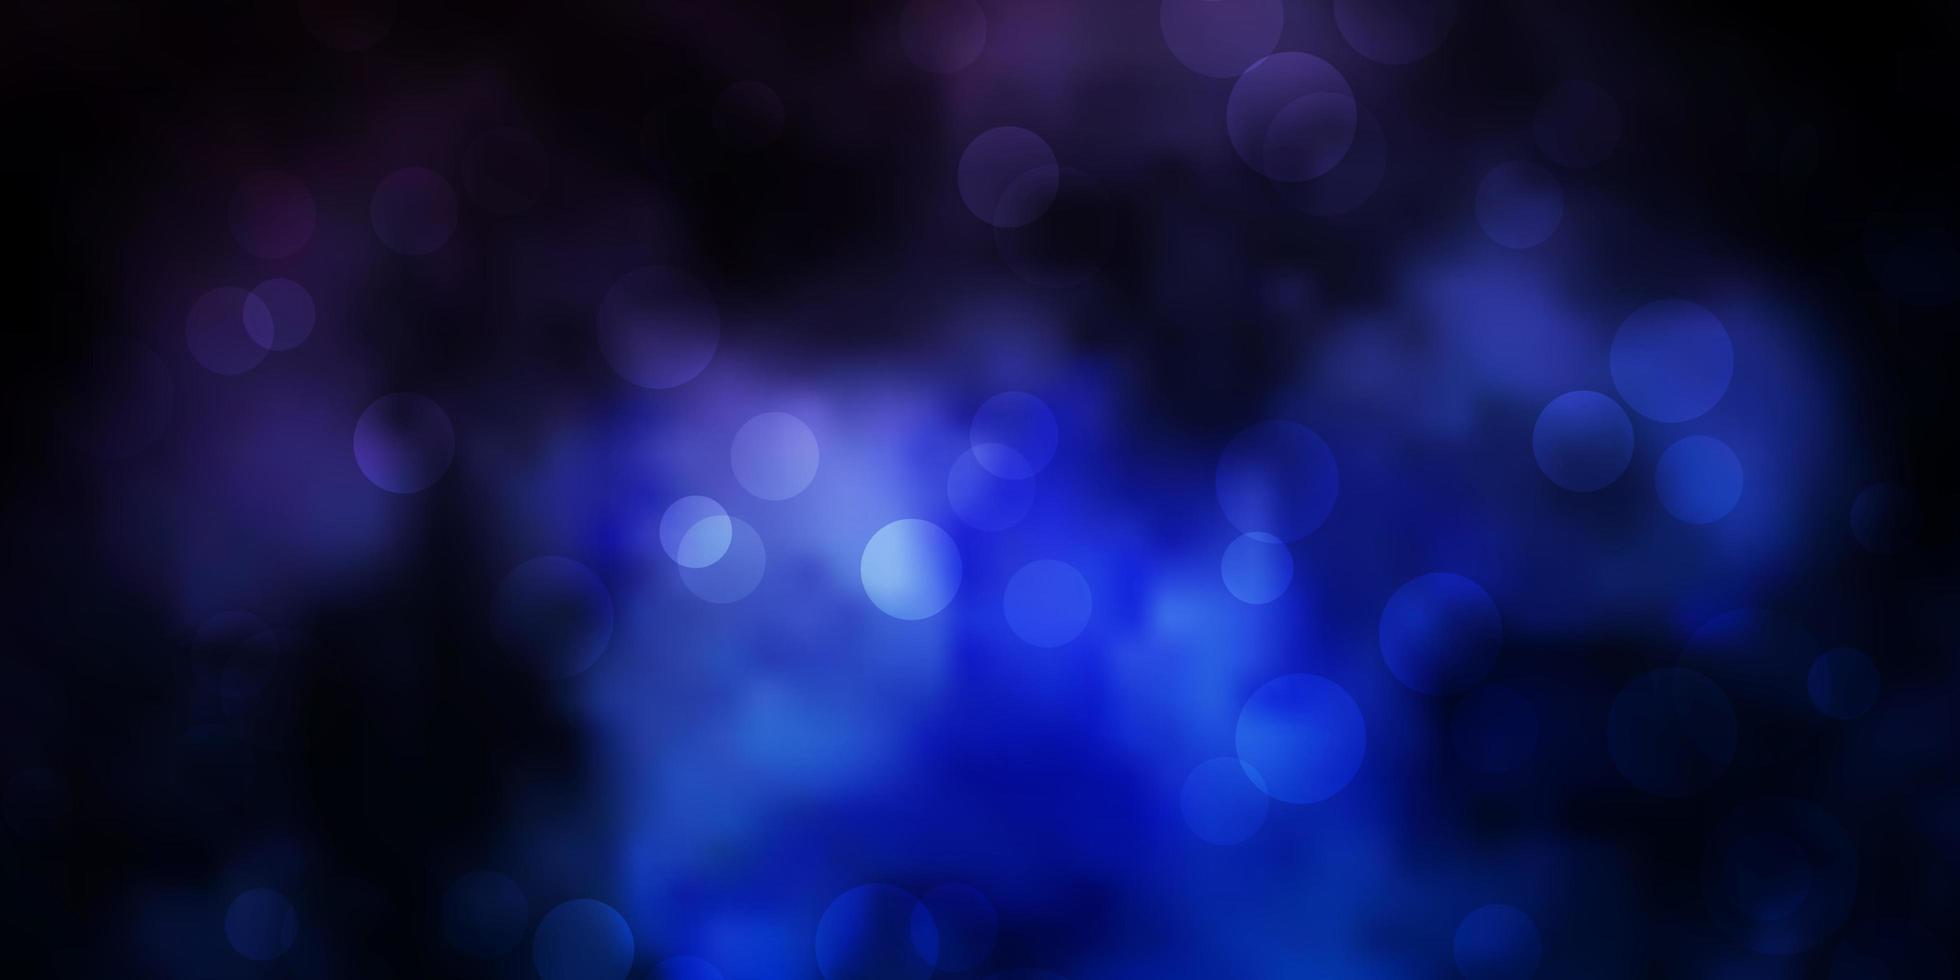 Dark BLUE vector background with spots.